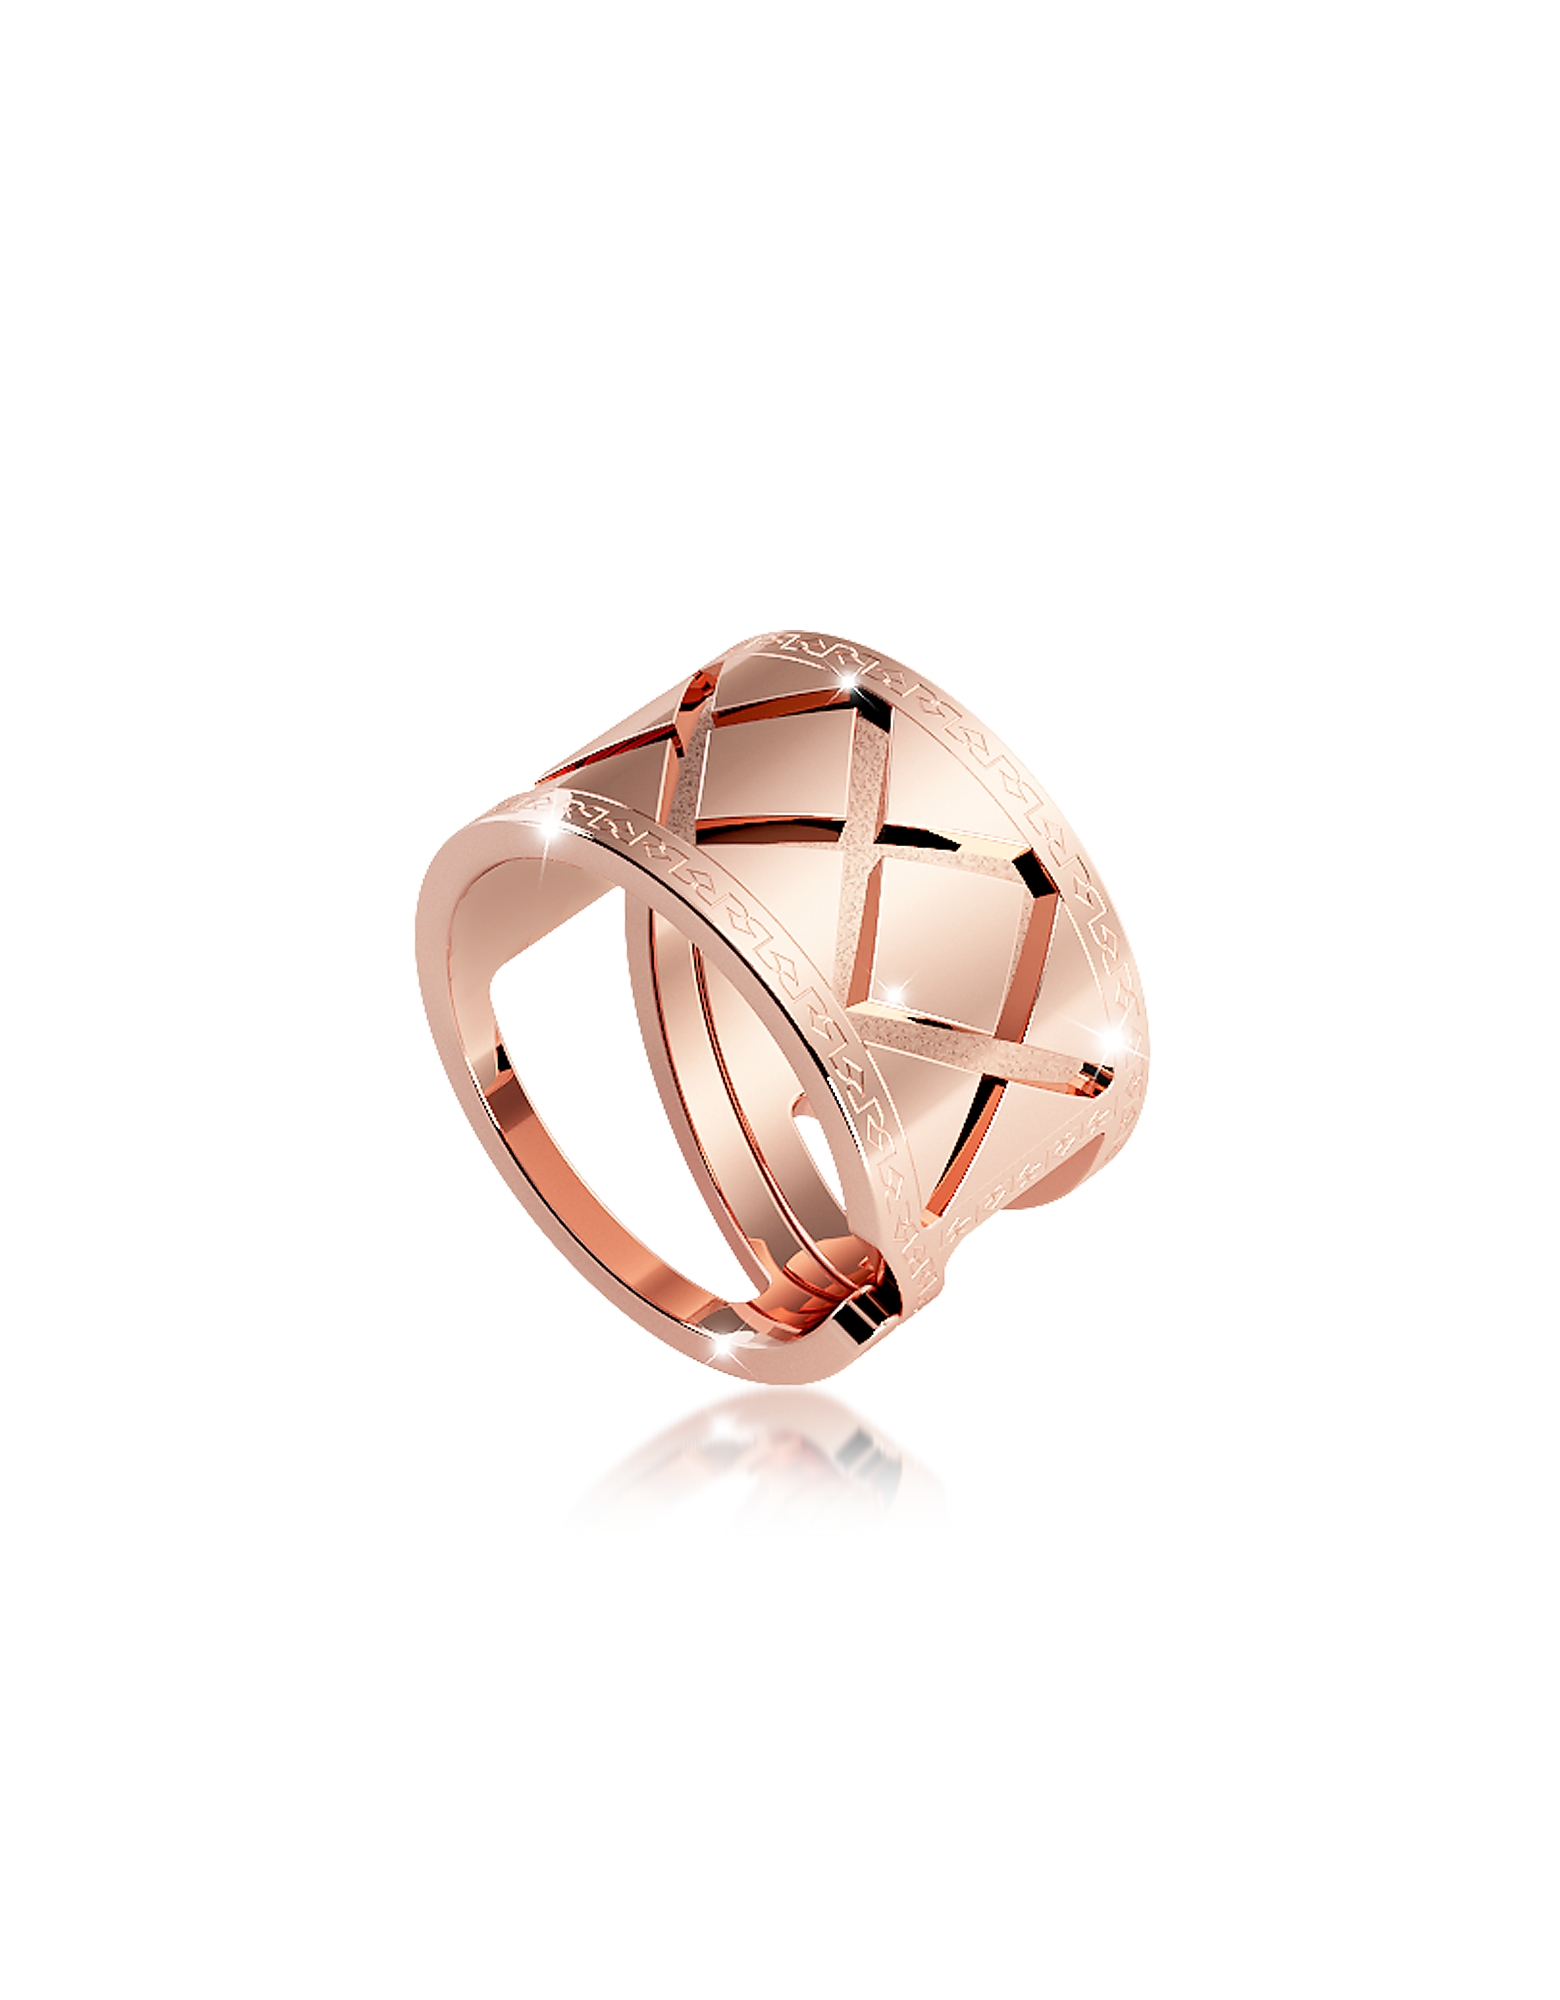 Rebecca Rings, Melrose Rose Gold Over Bronze Ring